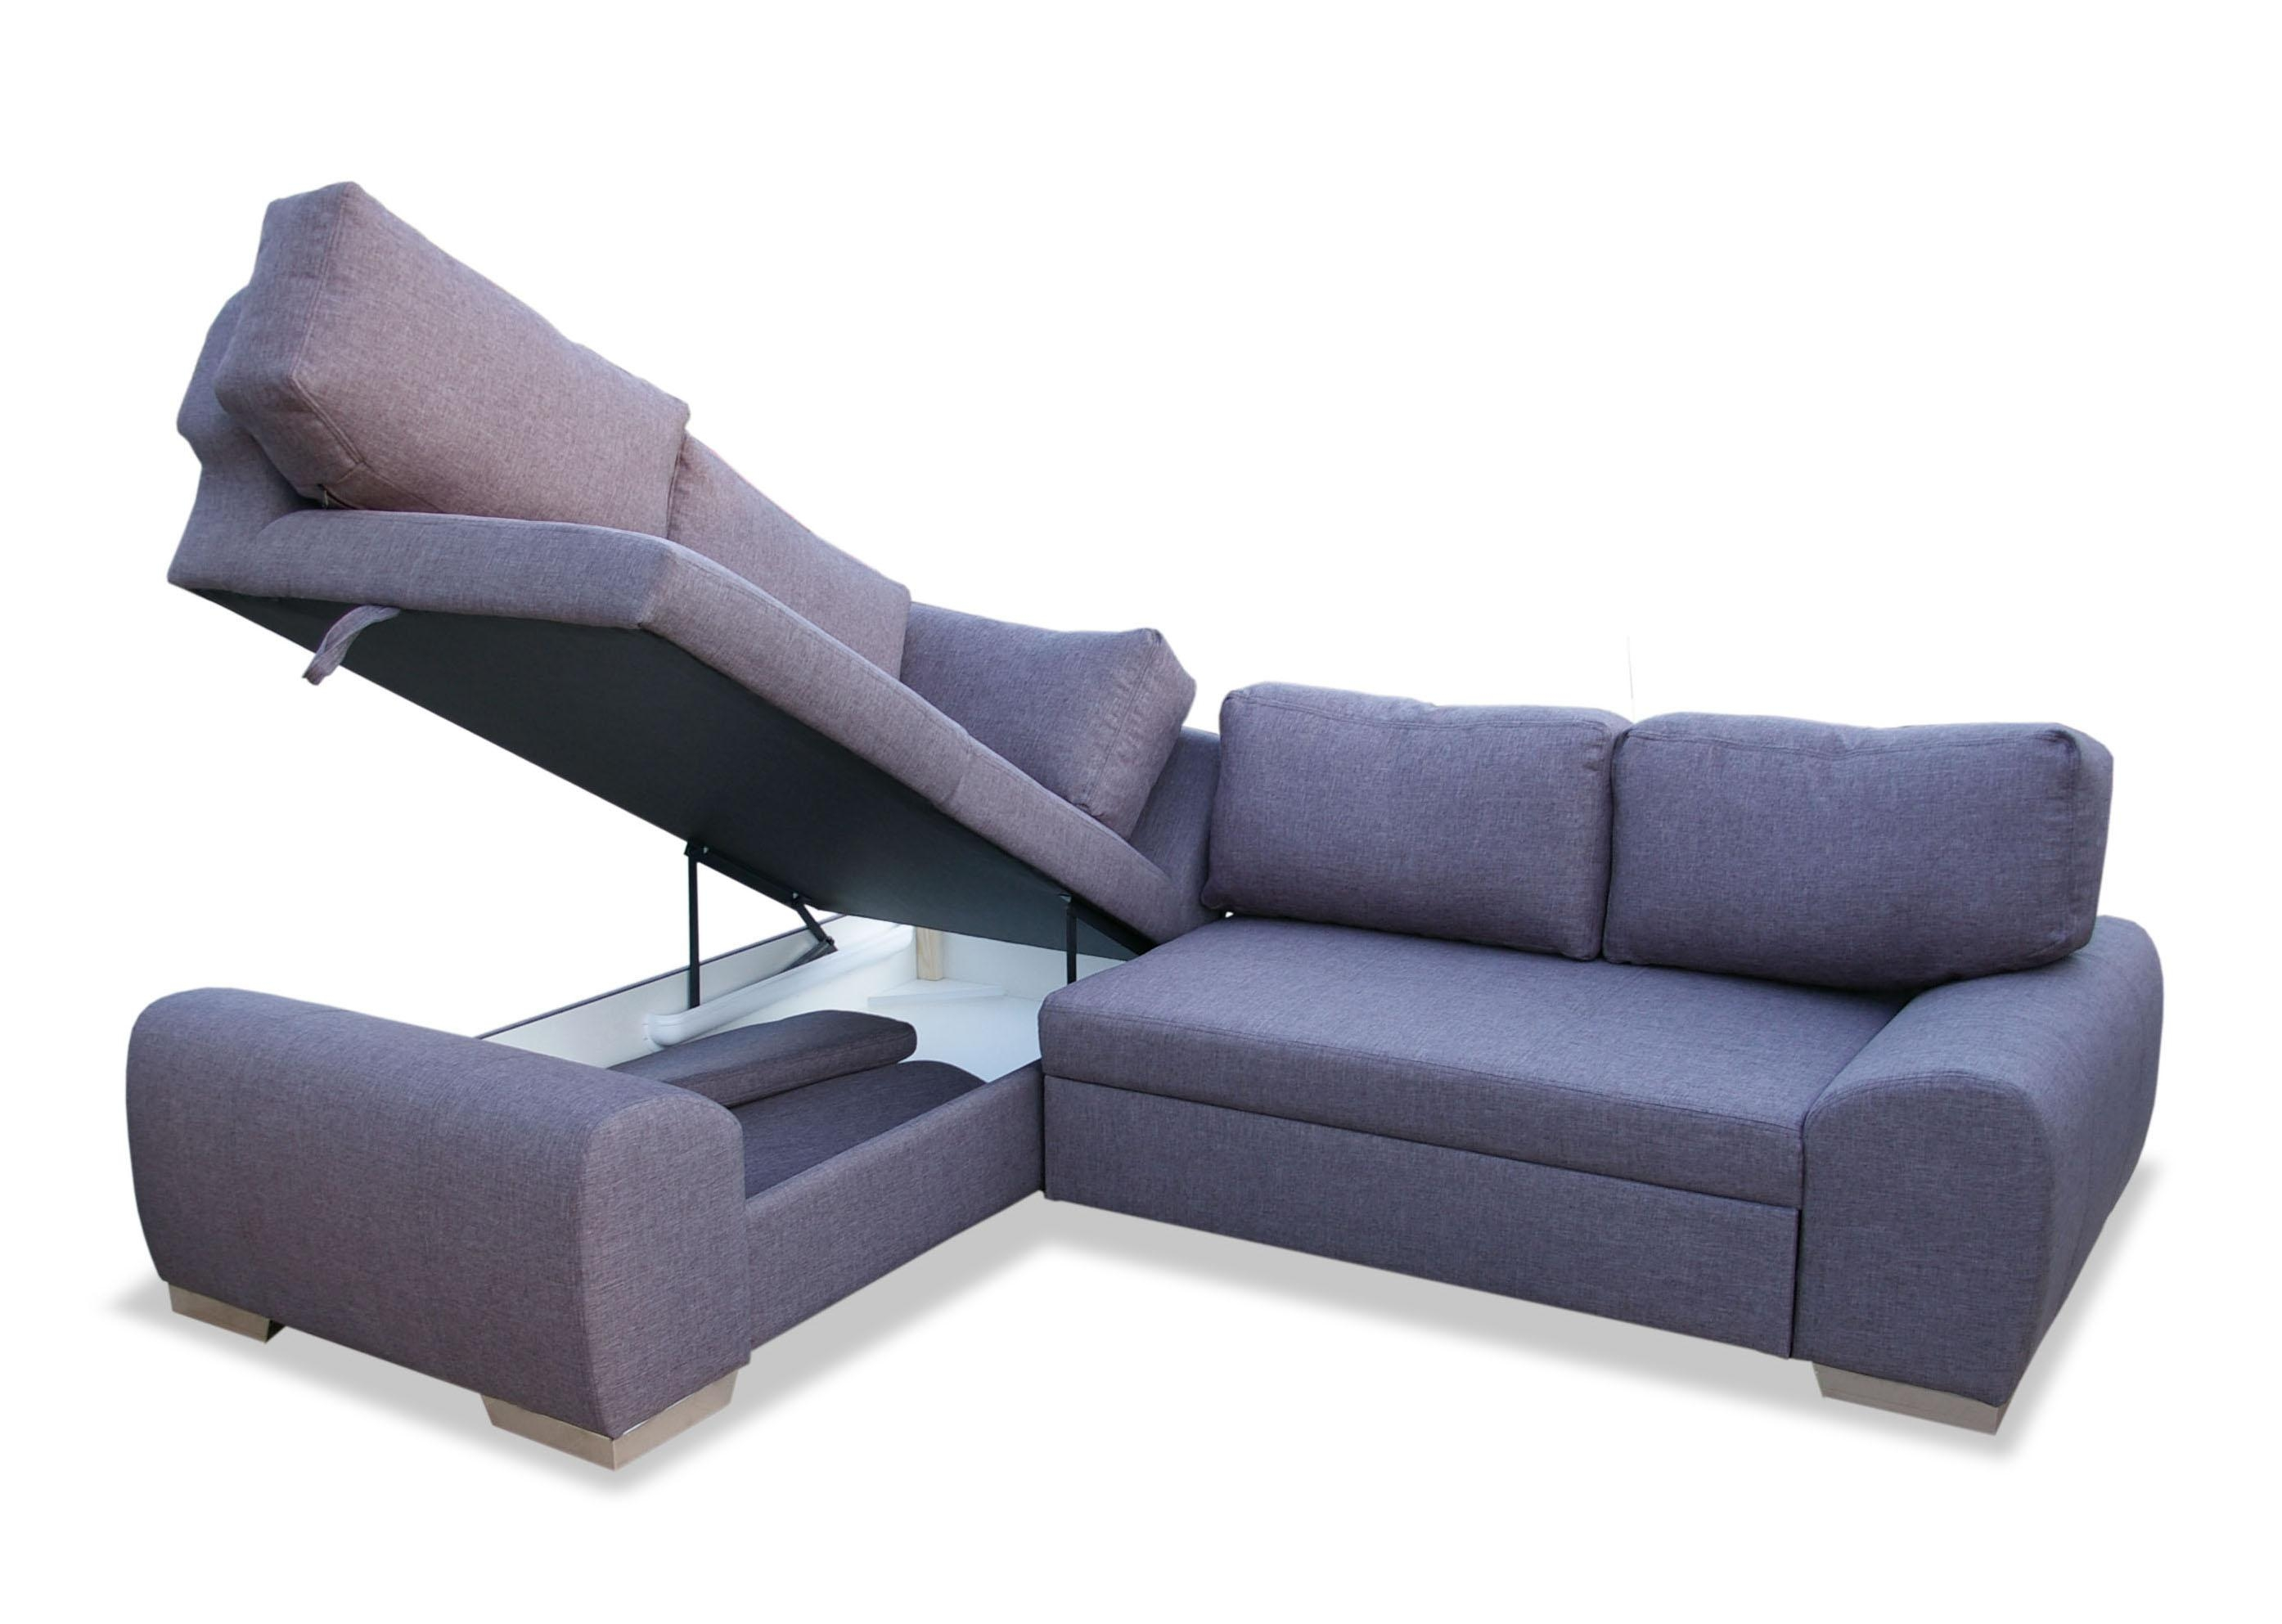 Sofas Center : Awesome Sofar With Storage For Movie Nights In With Regard To Sectional Sofa With Storage (Image 18 of 20)